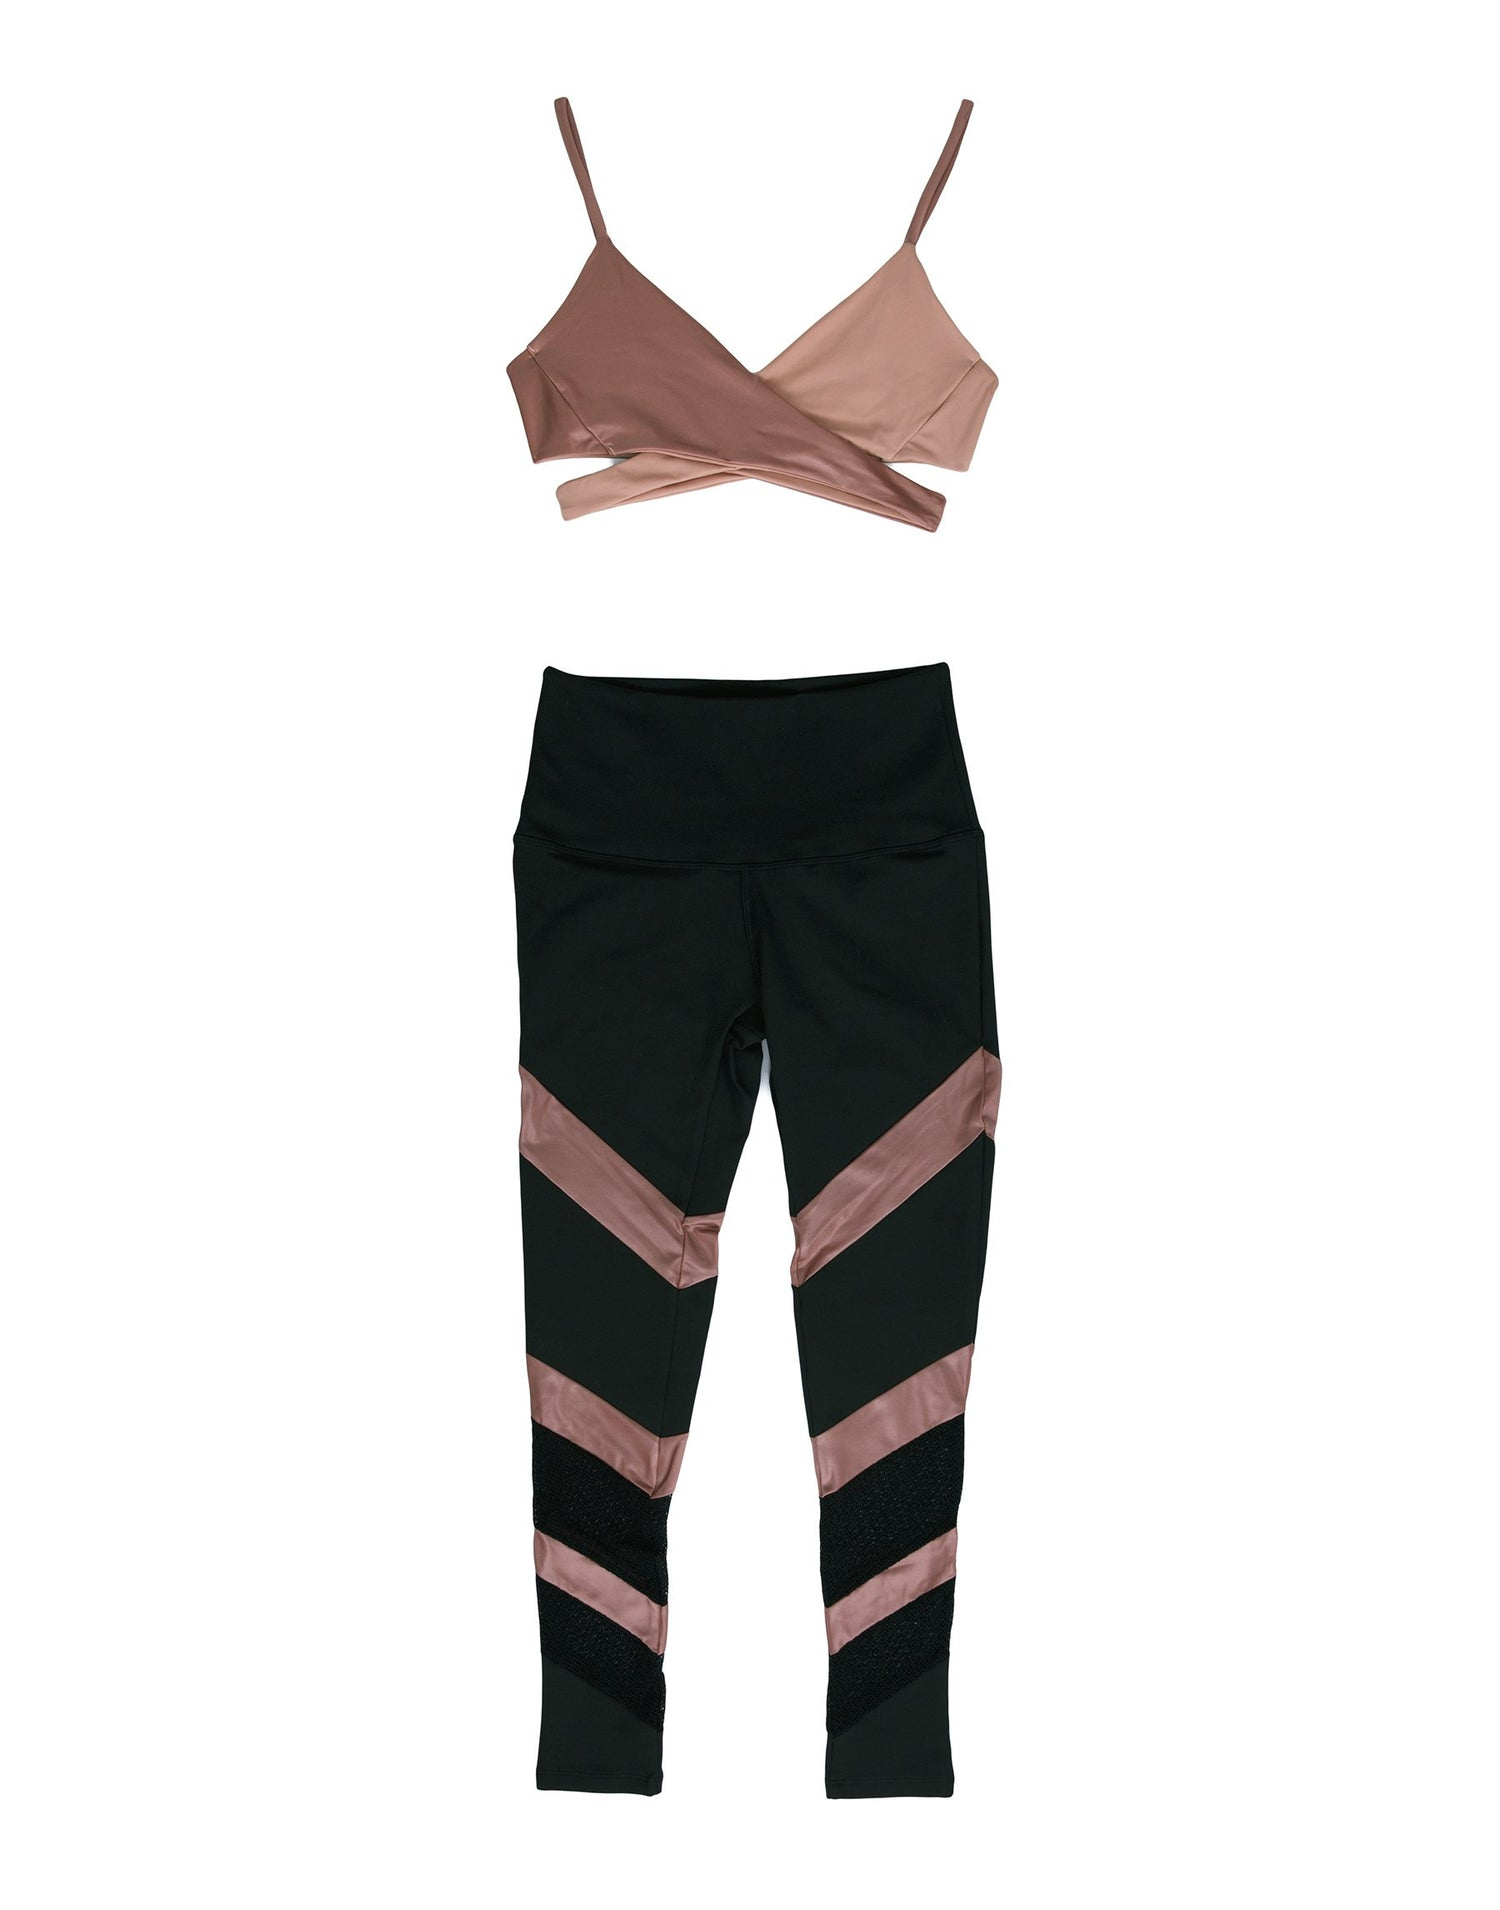 Black and Pink Active Workout Apparel - product view